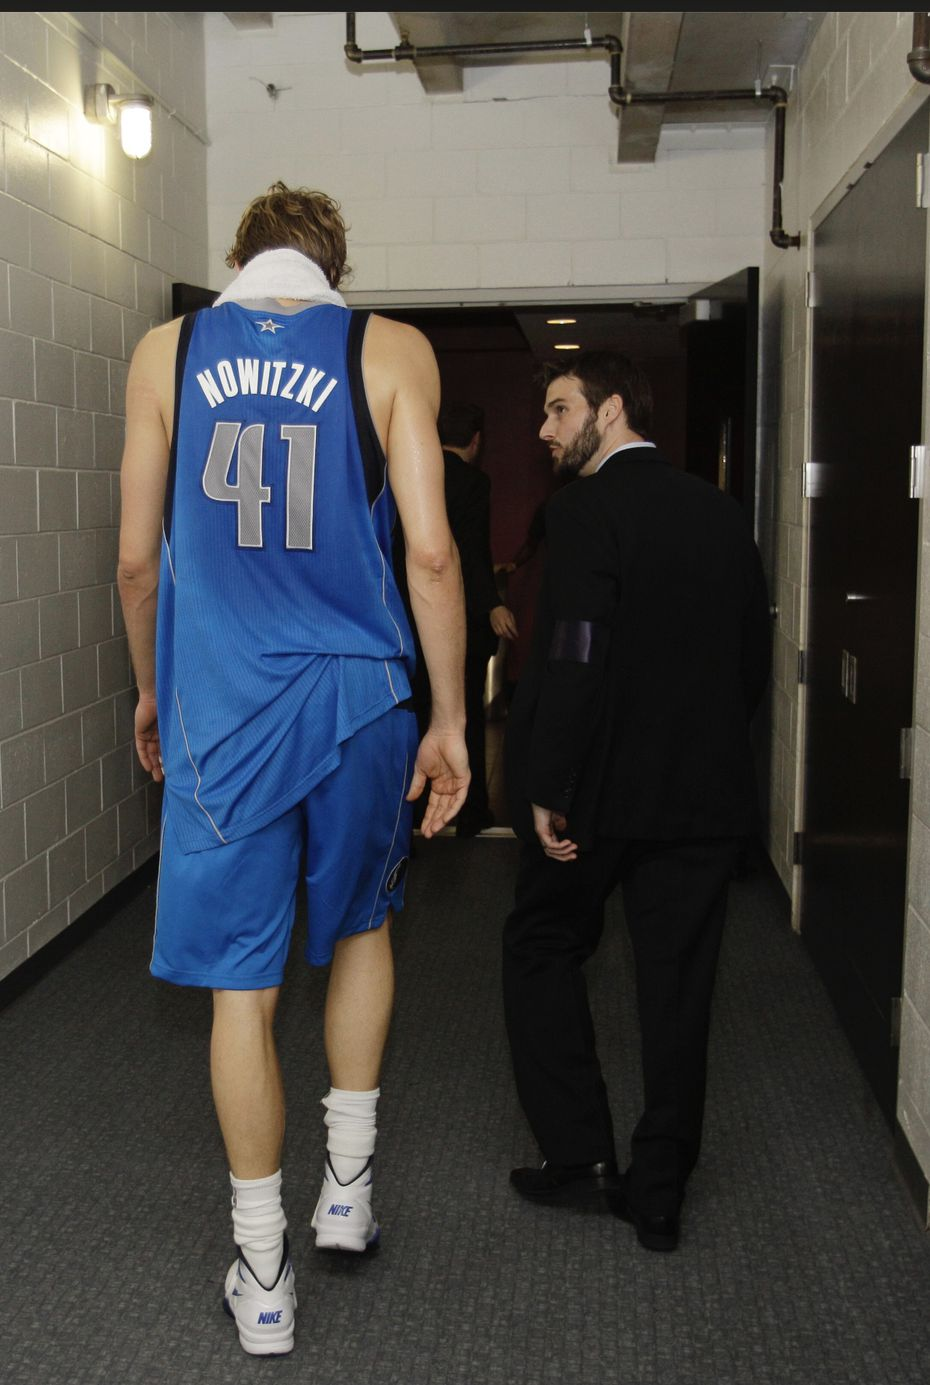 Scott Tomlin, now the Mavericks vice president of basketball communications, walks back up the AmericanAirlines Arena tunnel to the court with Dirk Nowitzki after Dallas' Game 6 victory in the 2011 NBA Finals. Tomlin was instrumental in convincing Nowitzki to return to the court to participate in the trophy ceremony.